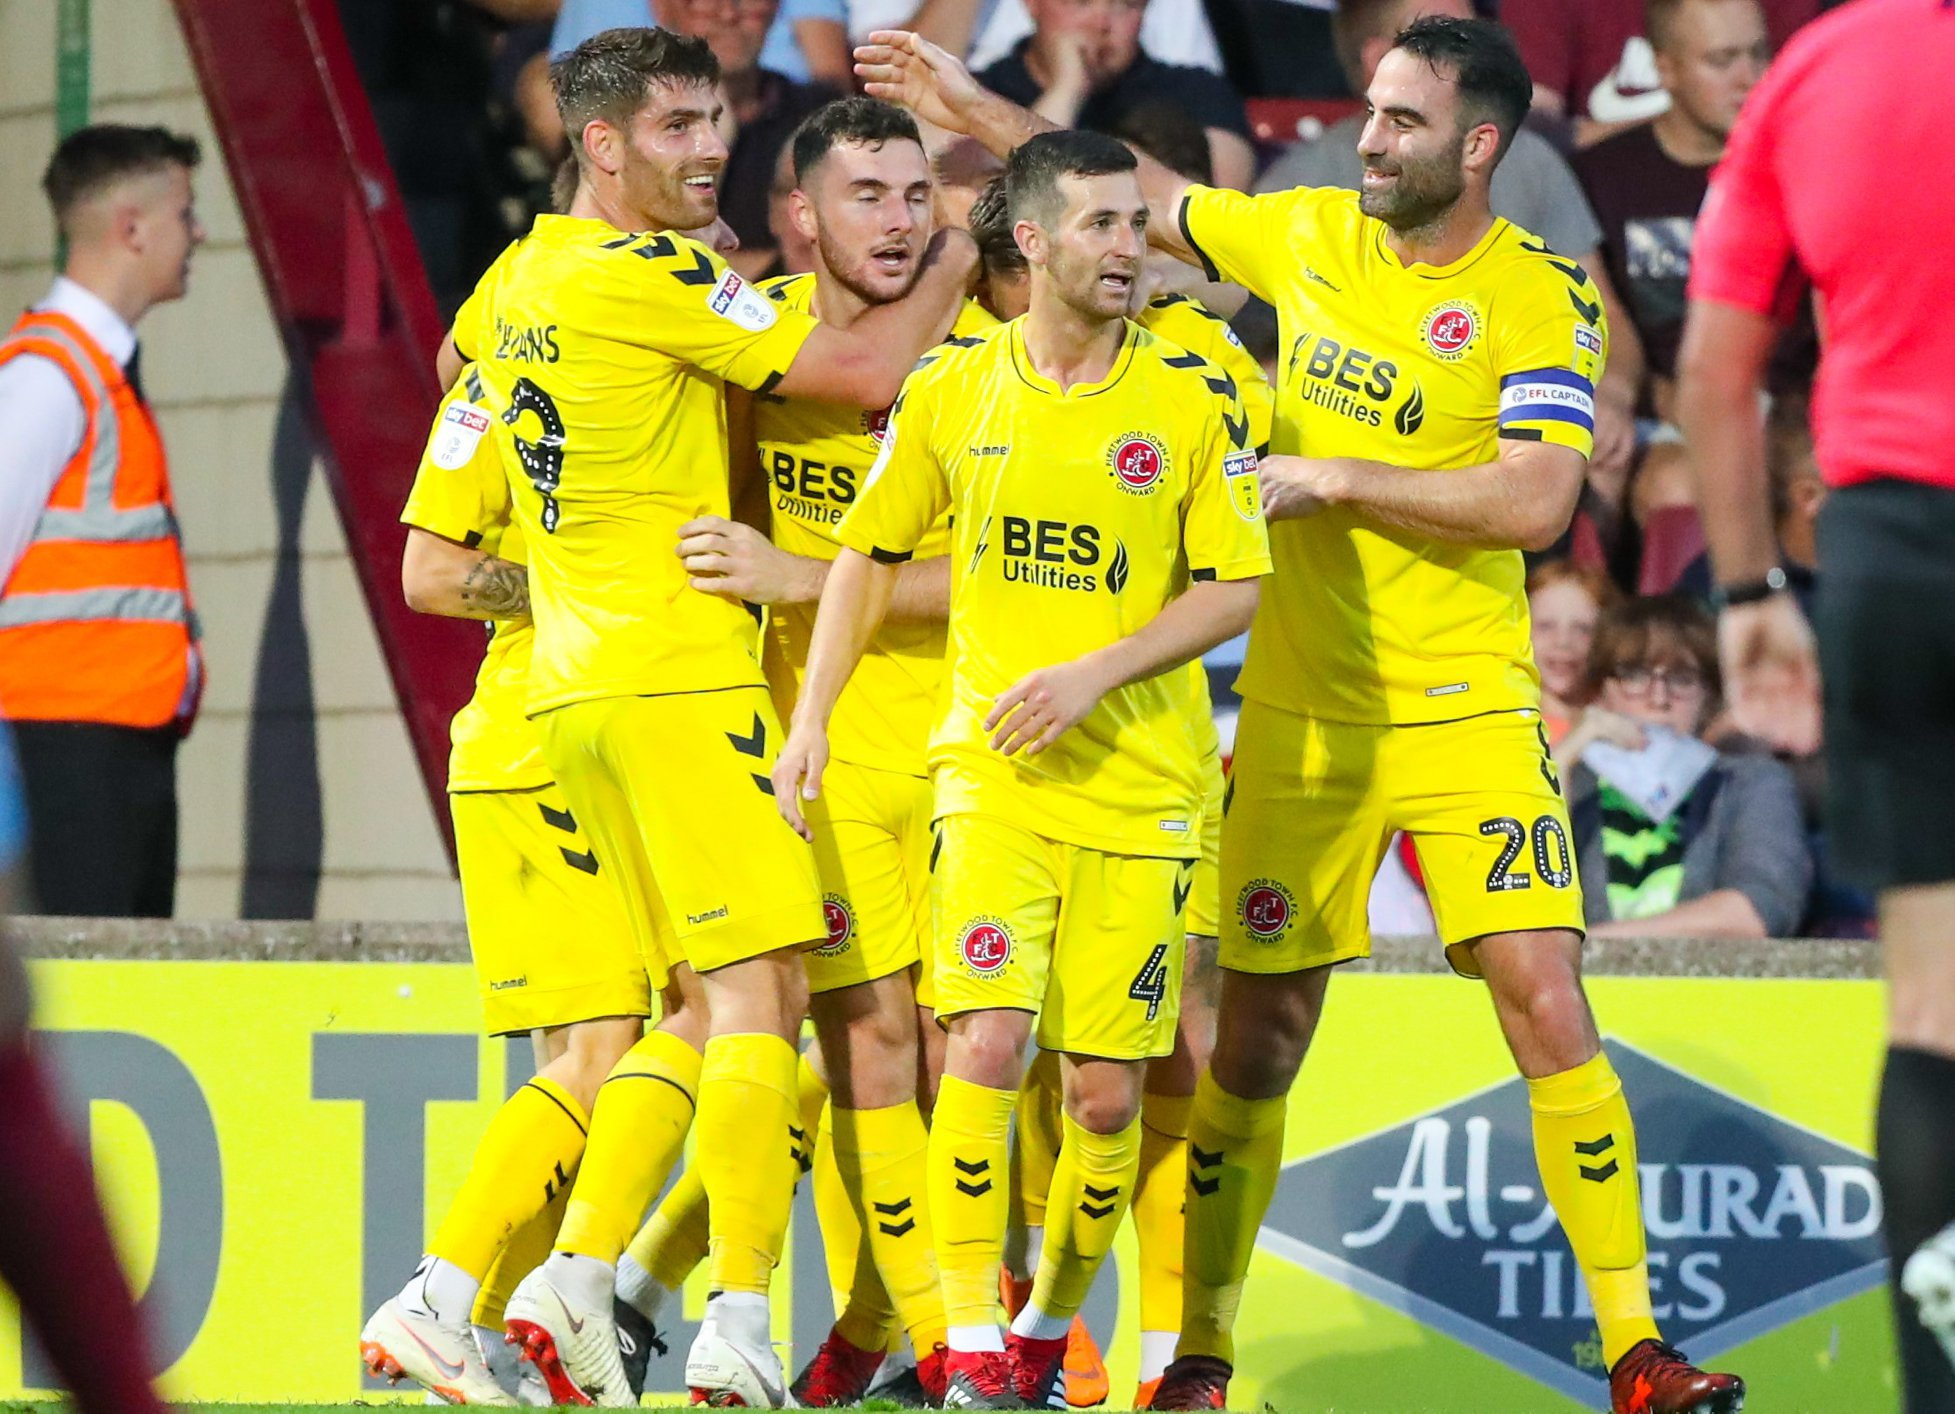 League One 10 agosto 2019: i pronostici